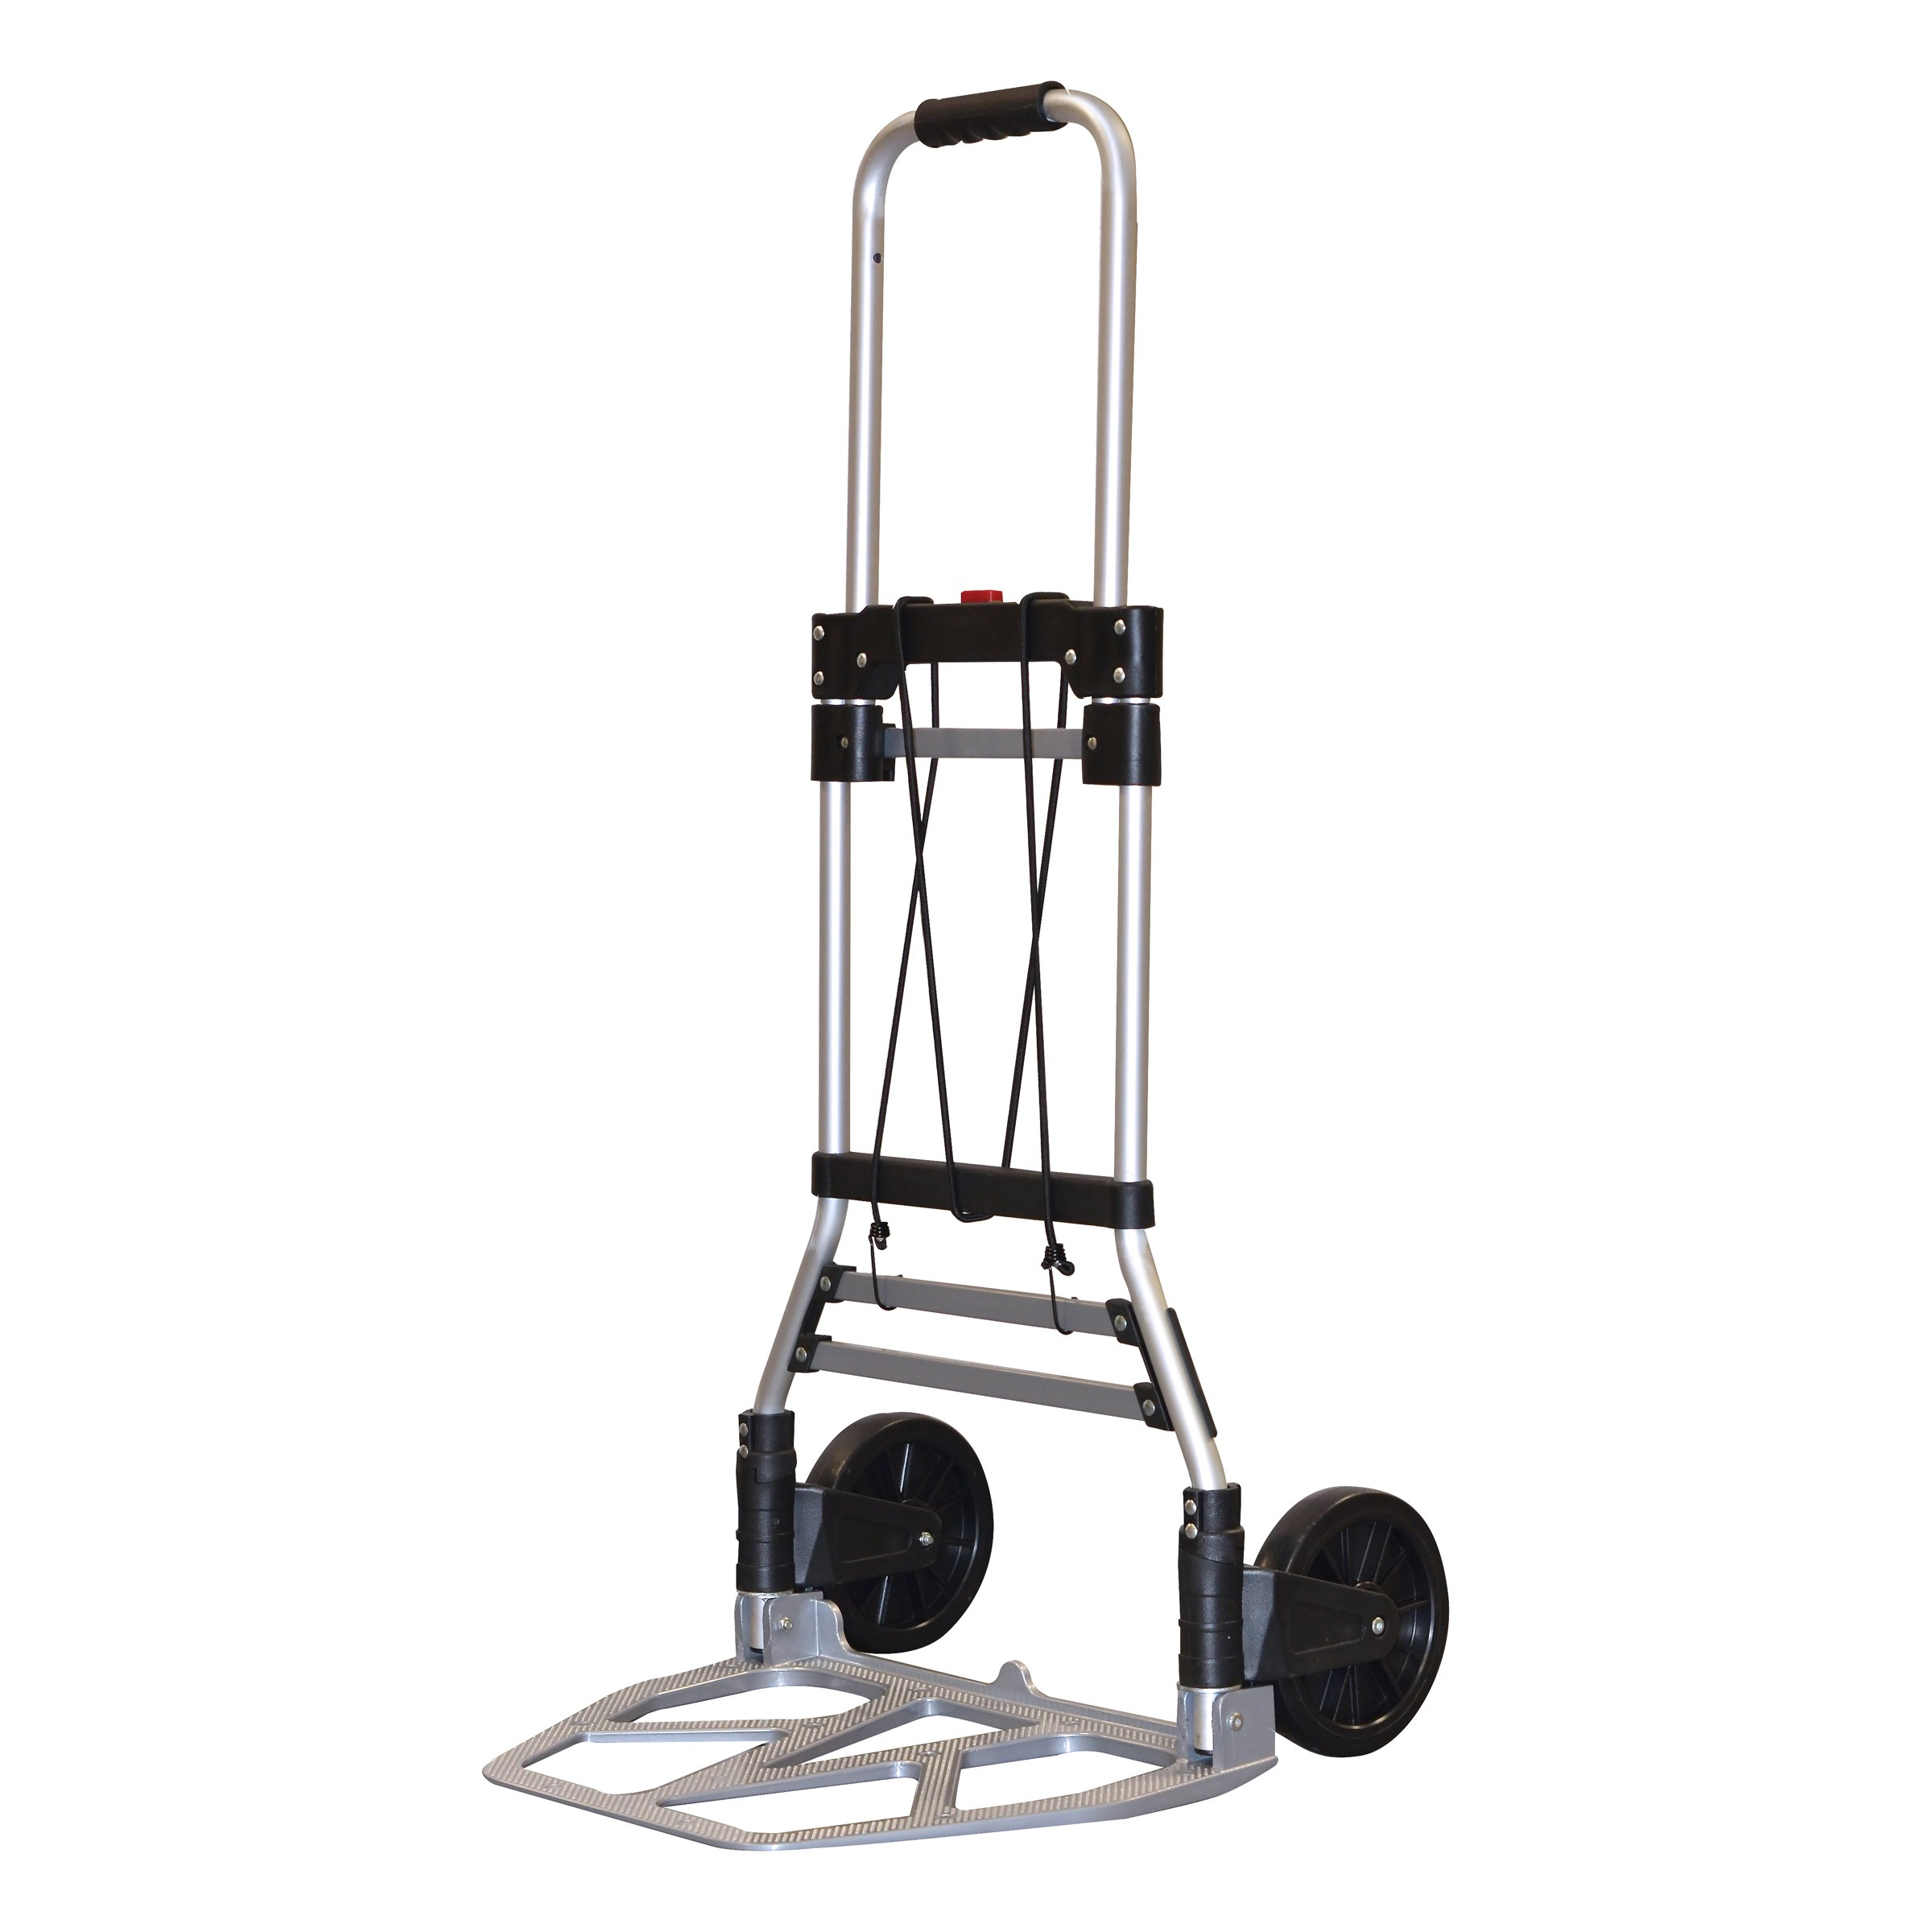 Milwaukee Hand Trucks 33882 Aluminum Fold up Hand Truck with 7-Inch Tires